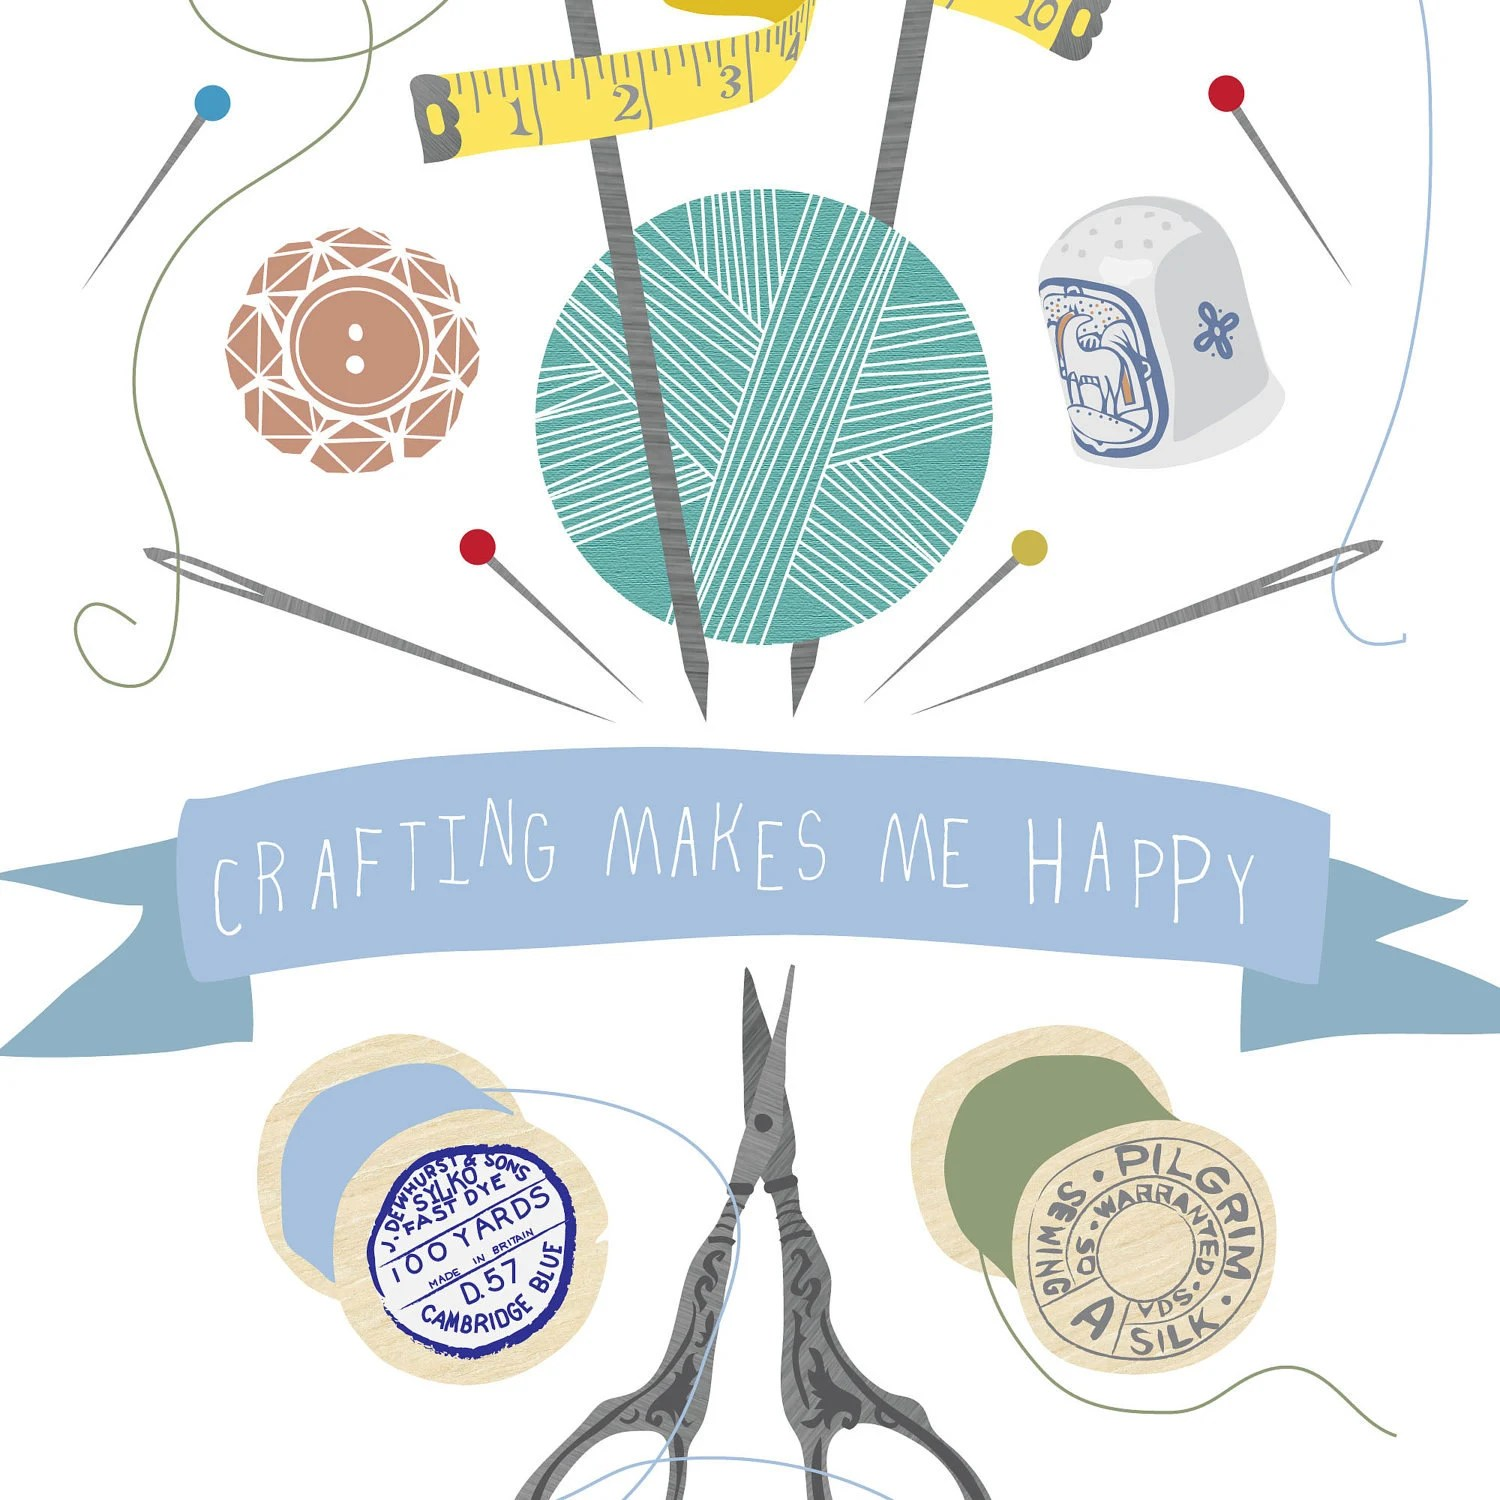 Crafting makes me happy print by Tea and Ceremony